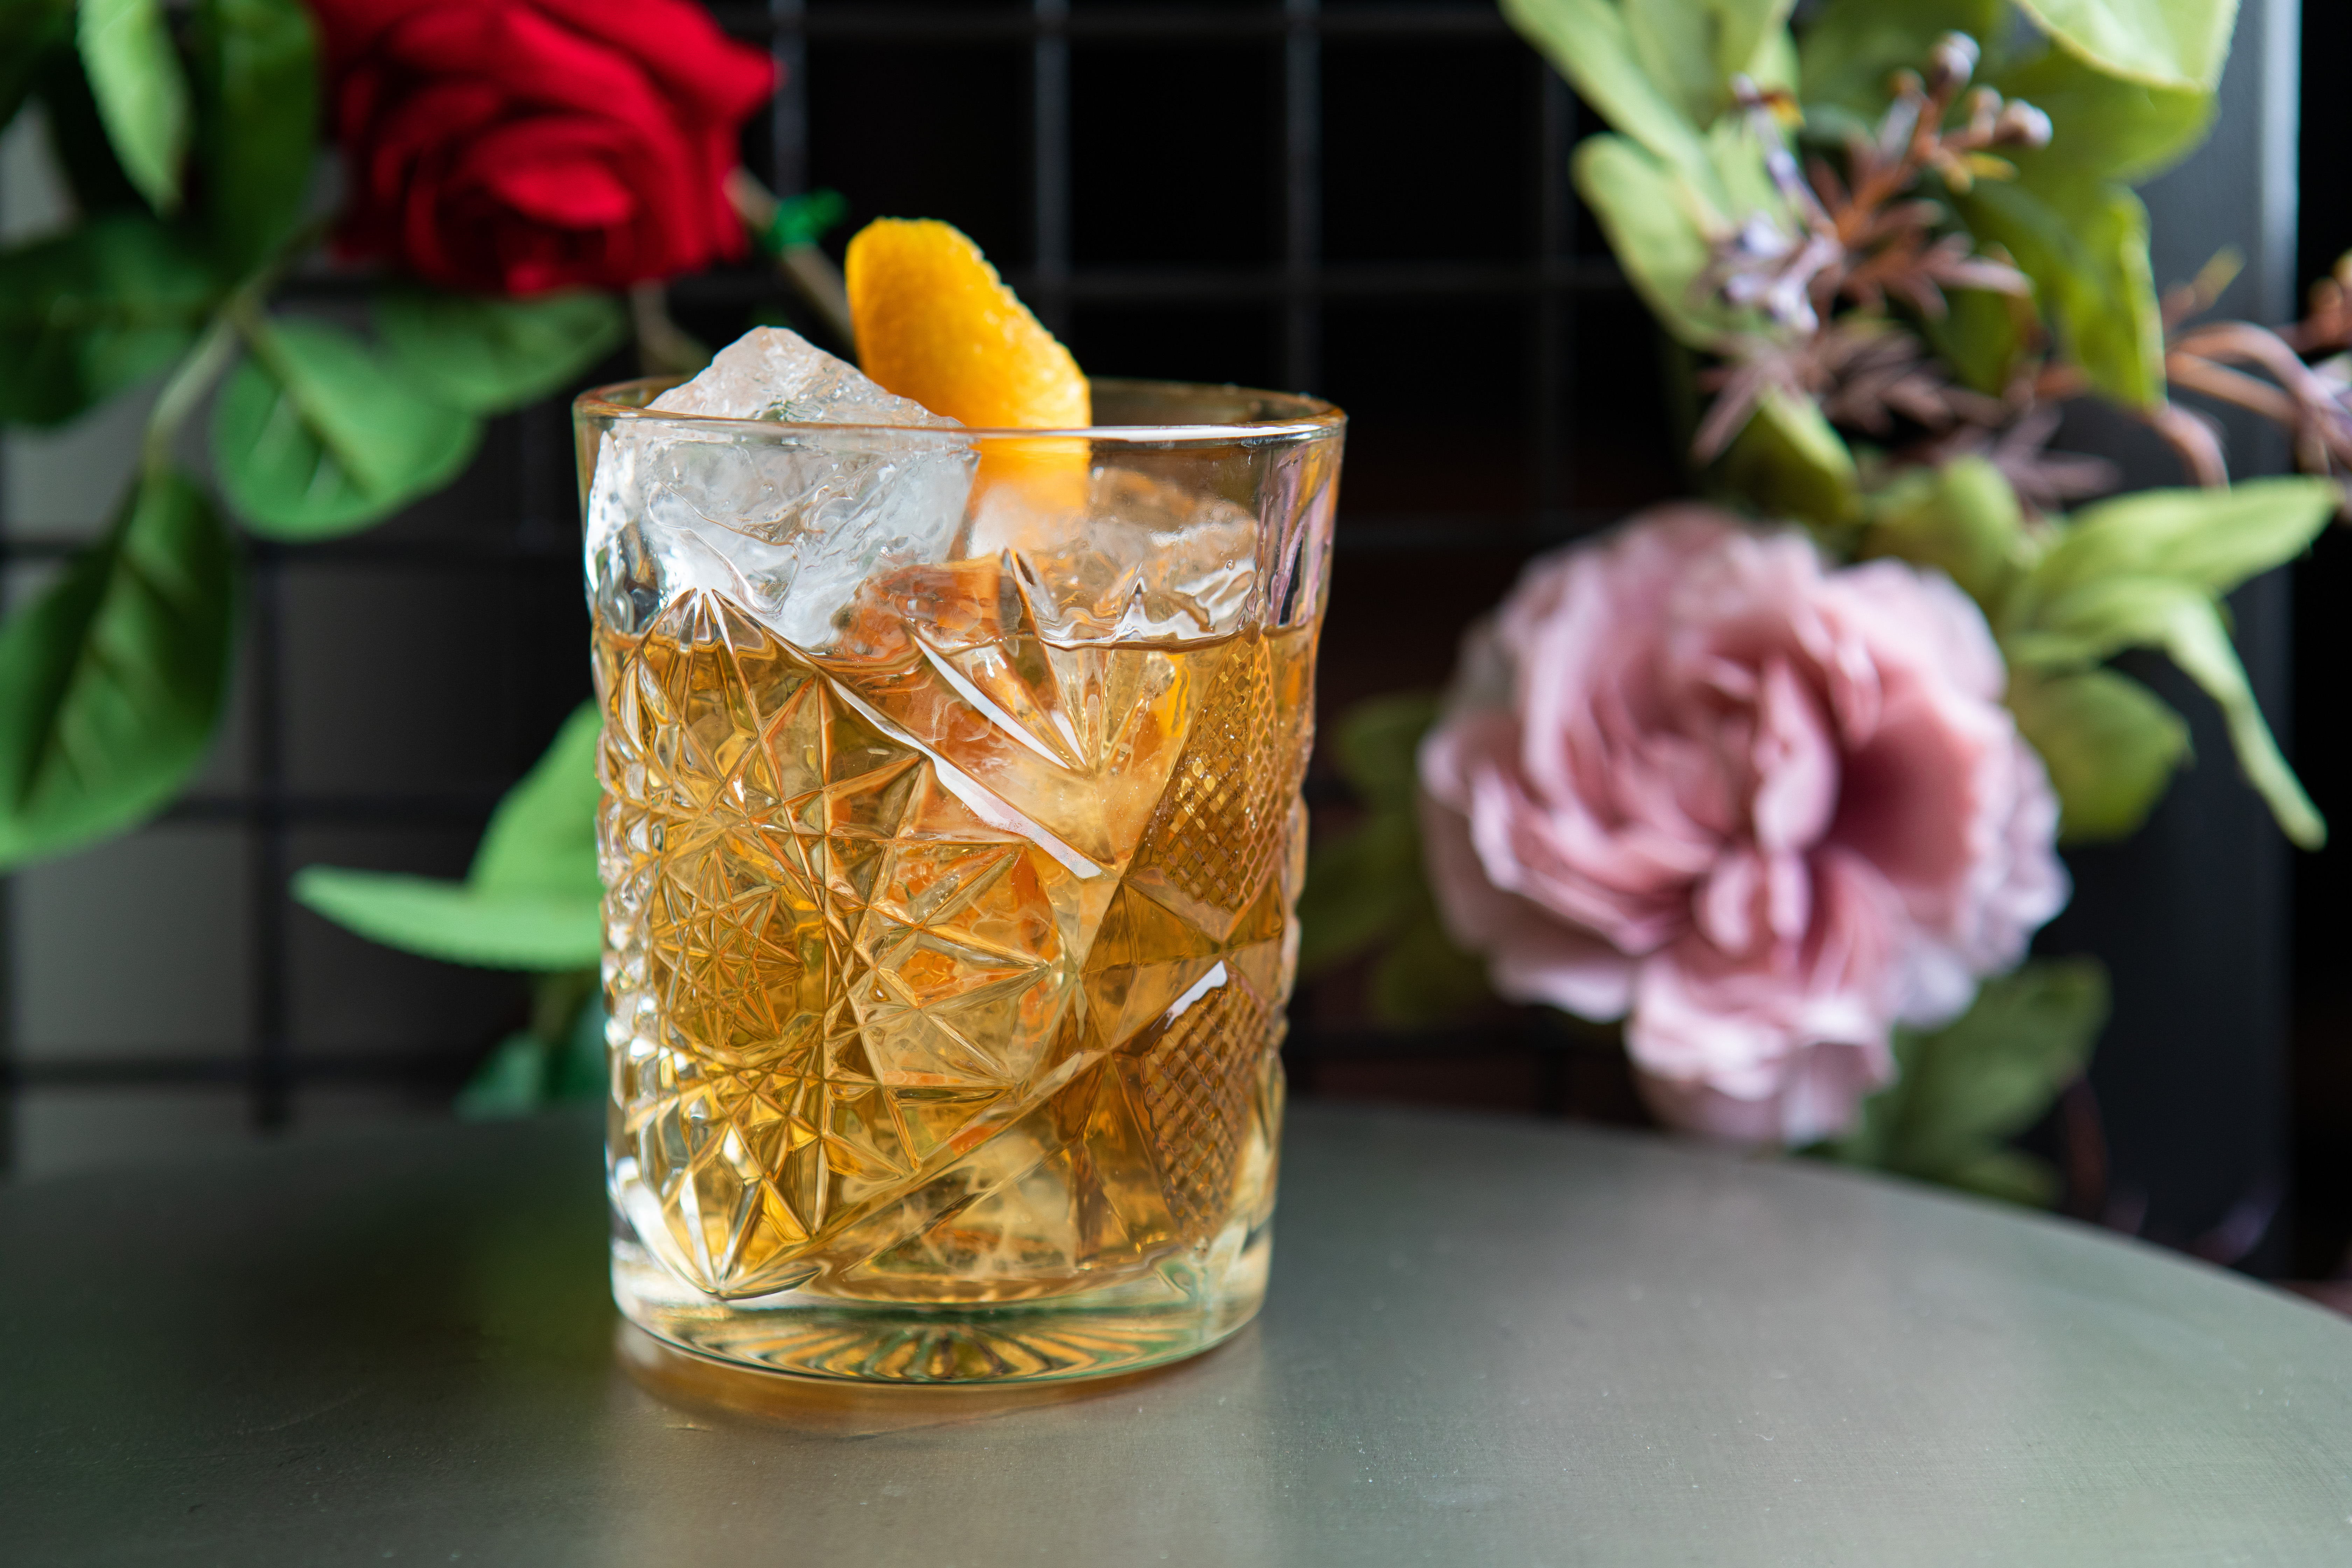 A brown cocktail in a cut crystal glass sits in front of a bouquet of flowers.